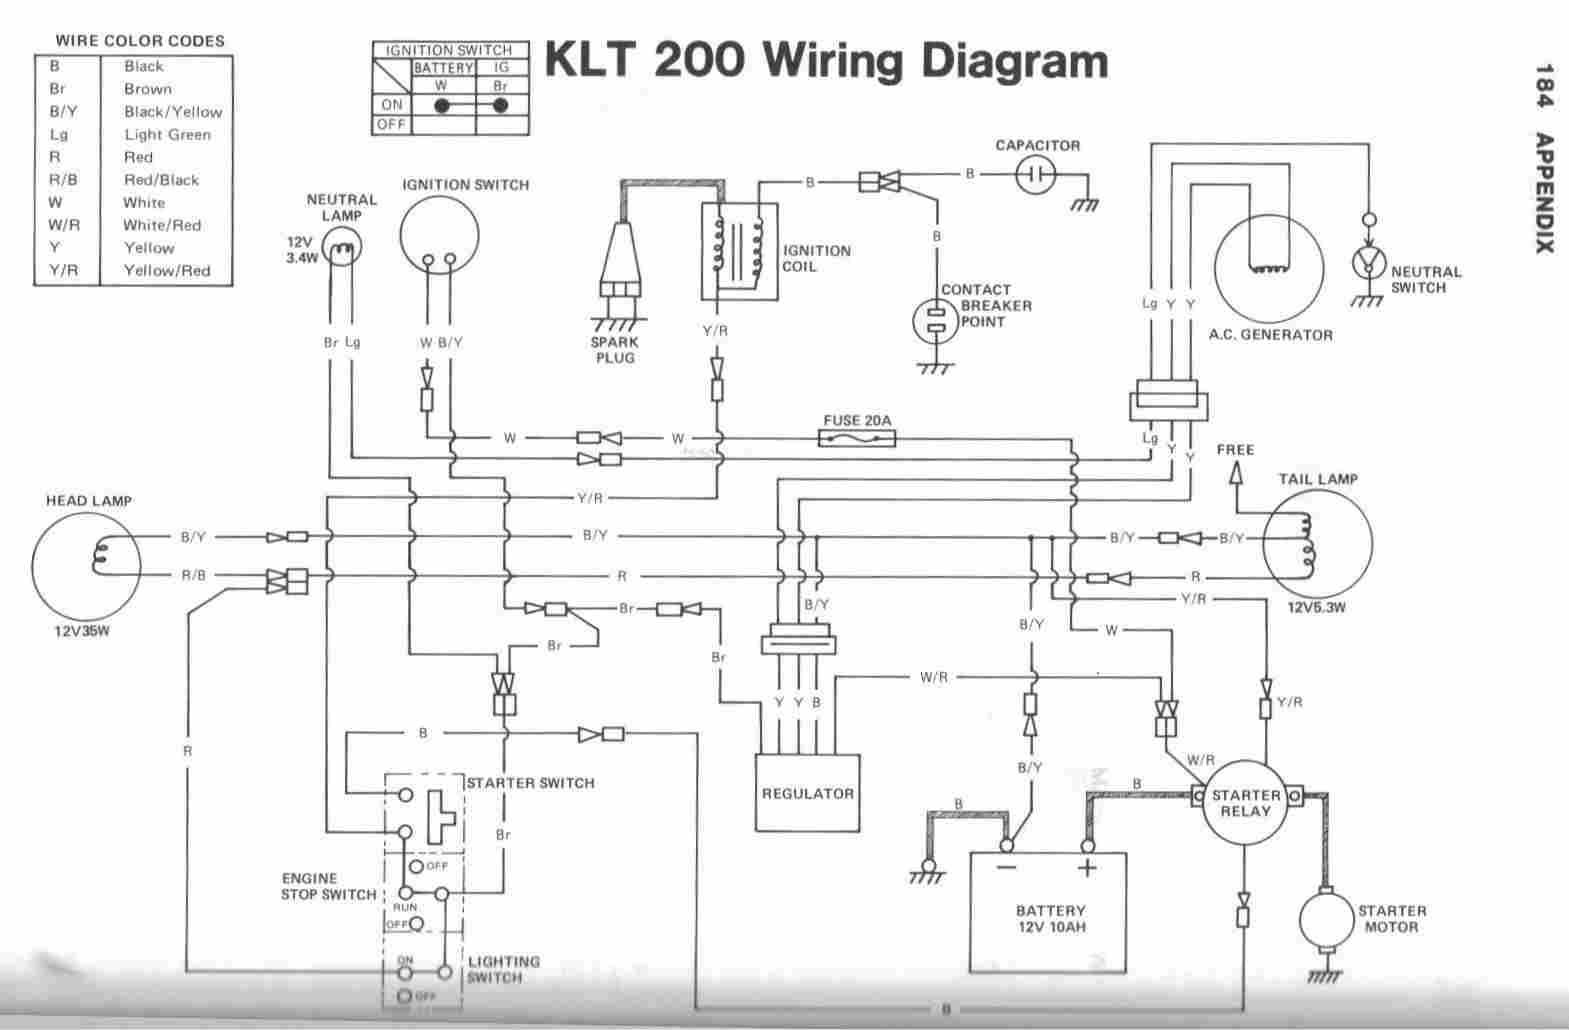 2869034594ce054a636782e5c44b61b4 residential electrical wiring diagrams pdf easy routing cool pdf wiring diagrams at bayanpartner.co